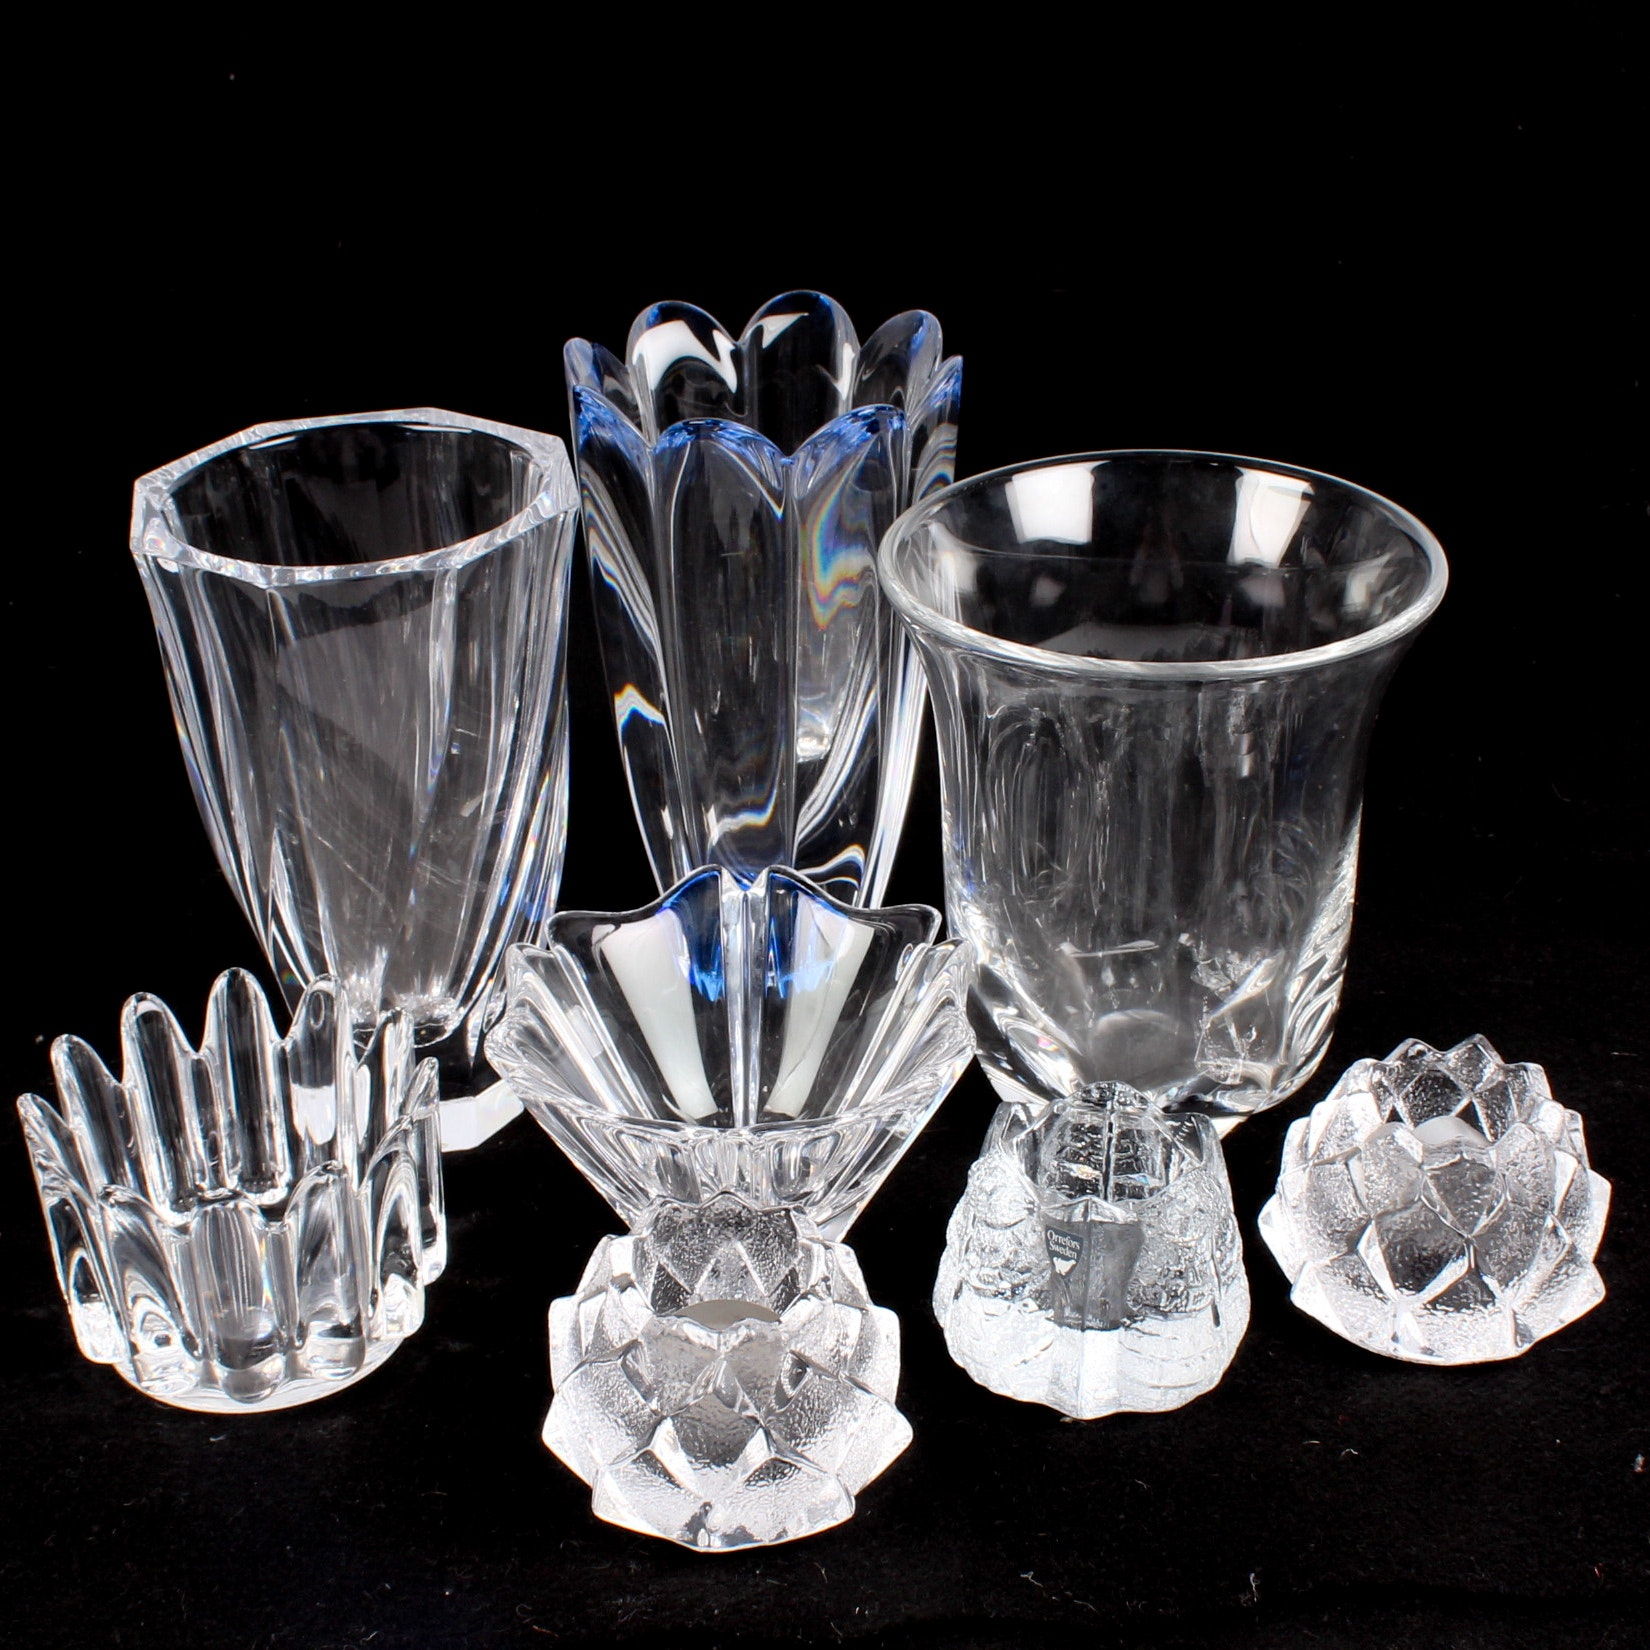 Orrefors Candle Holders and Vases Featuring Jan Johansson Mayflower Blue